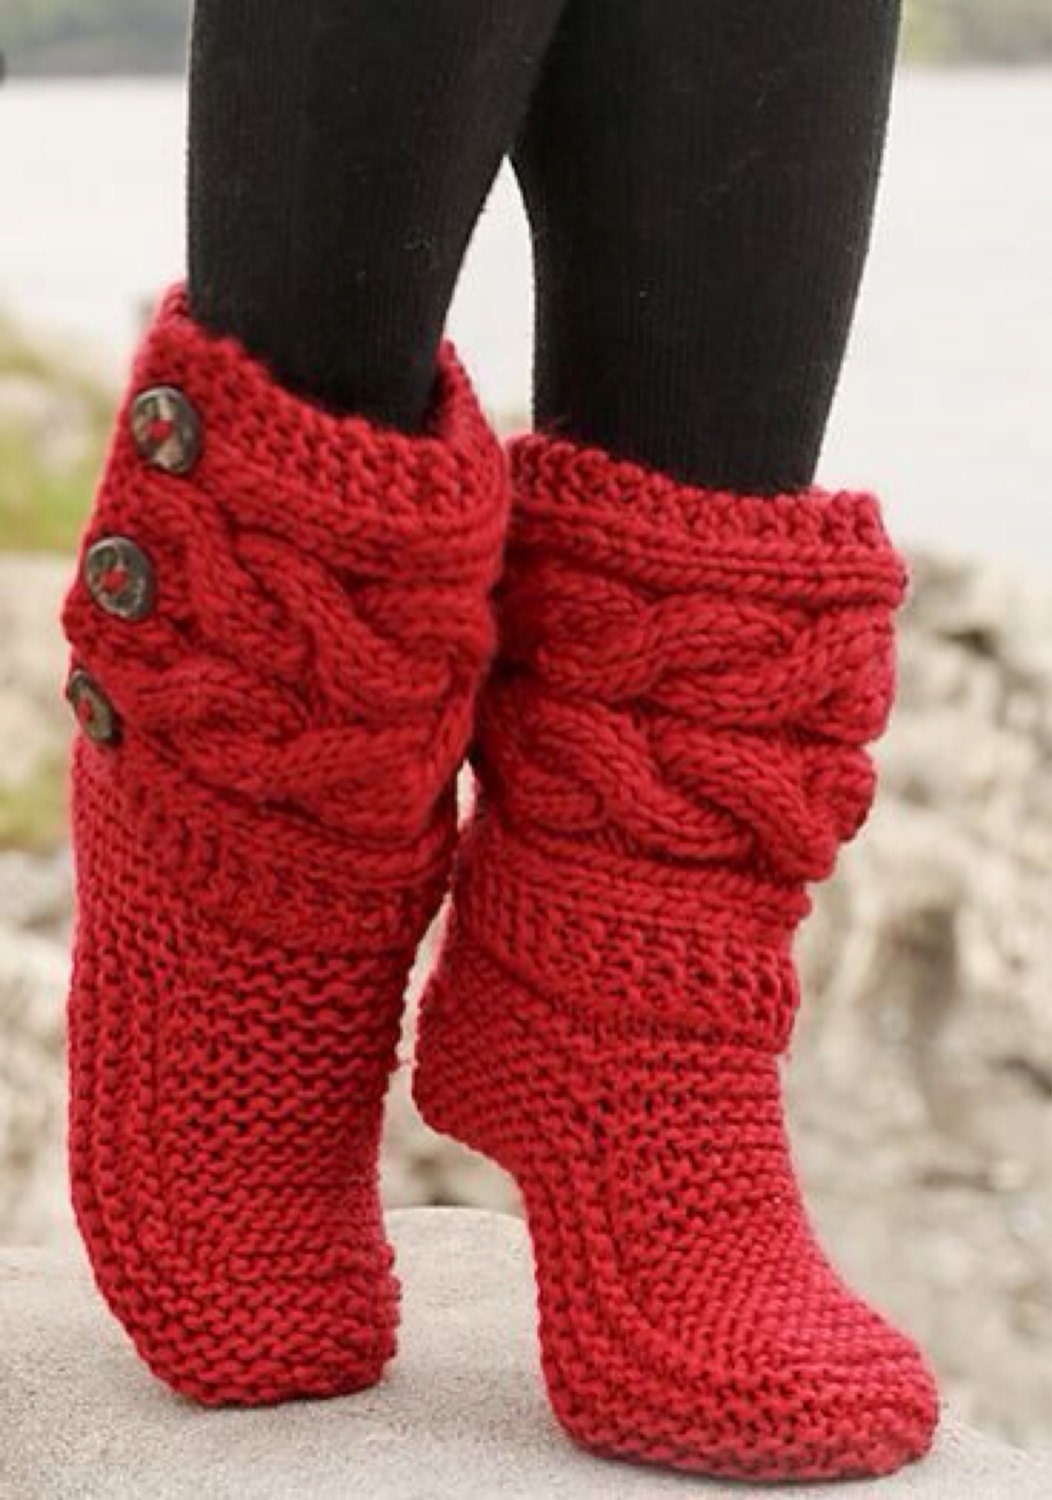 Etsys Favorite-Indoor Knitted Slippers Knitted Boots